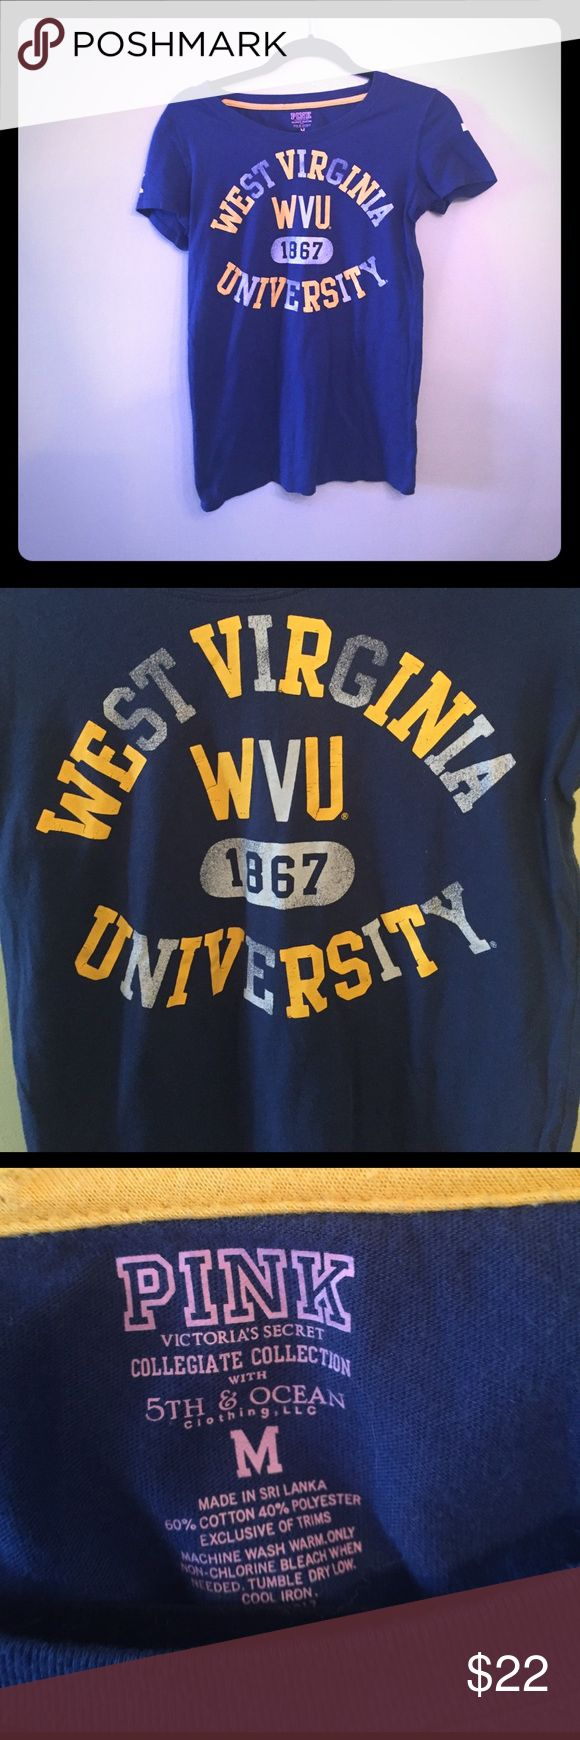 PINK WVU college shirt size M Collegiate collection from PINK. West Virginia University. Size medium Tops Tees - Short Sleeve